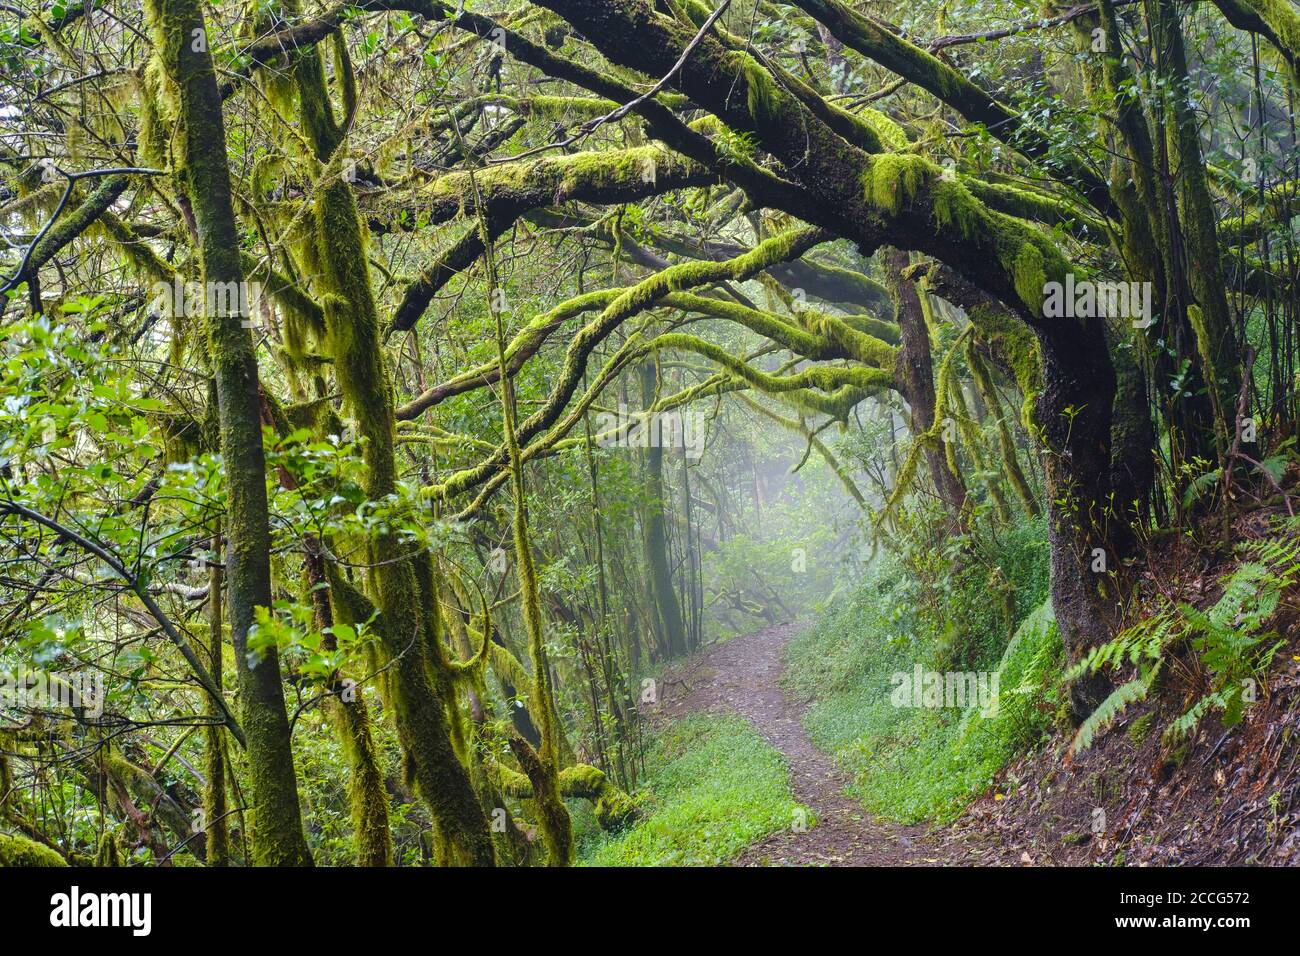 Forest path in the cloud forest at El Cedro, Garajonay National Park, La Gomera, Canary Islands, Spain Stock Photo